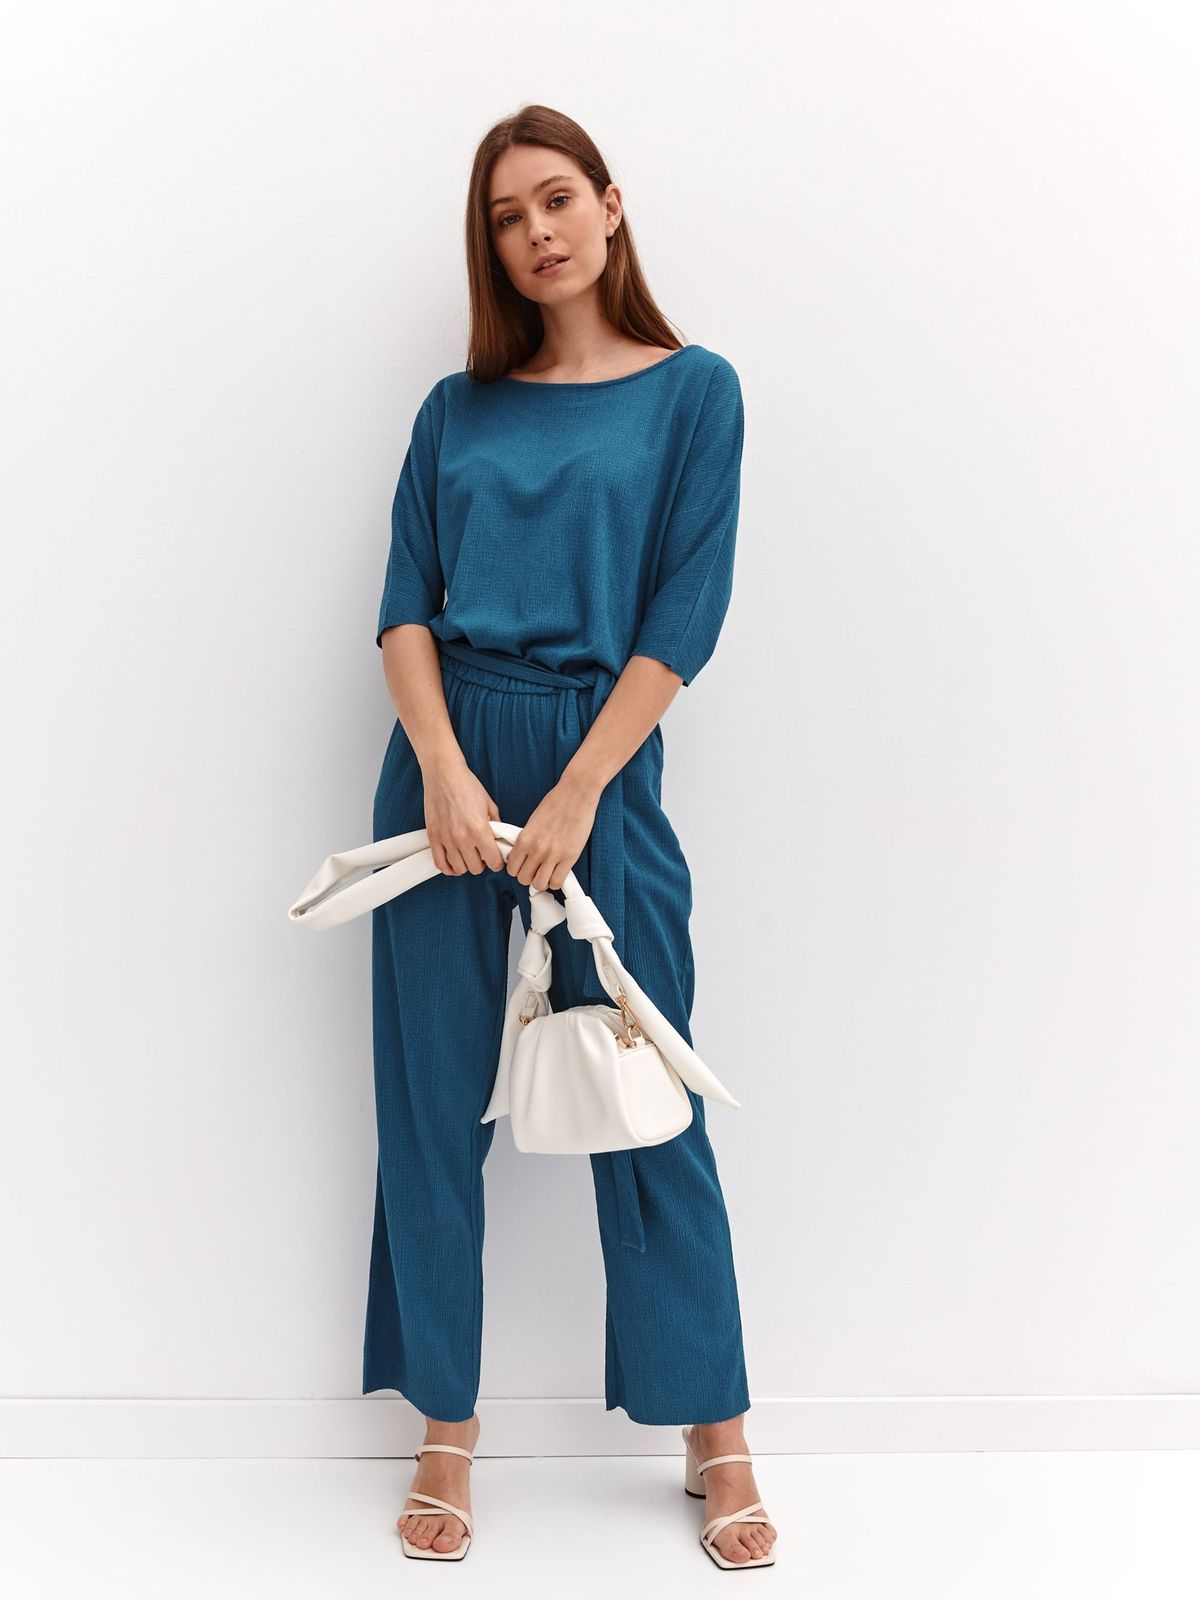 Flared airy fabric accessorized with tied waistband turquoise jumpsuit